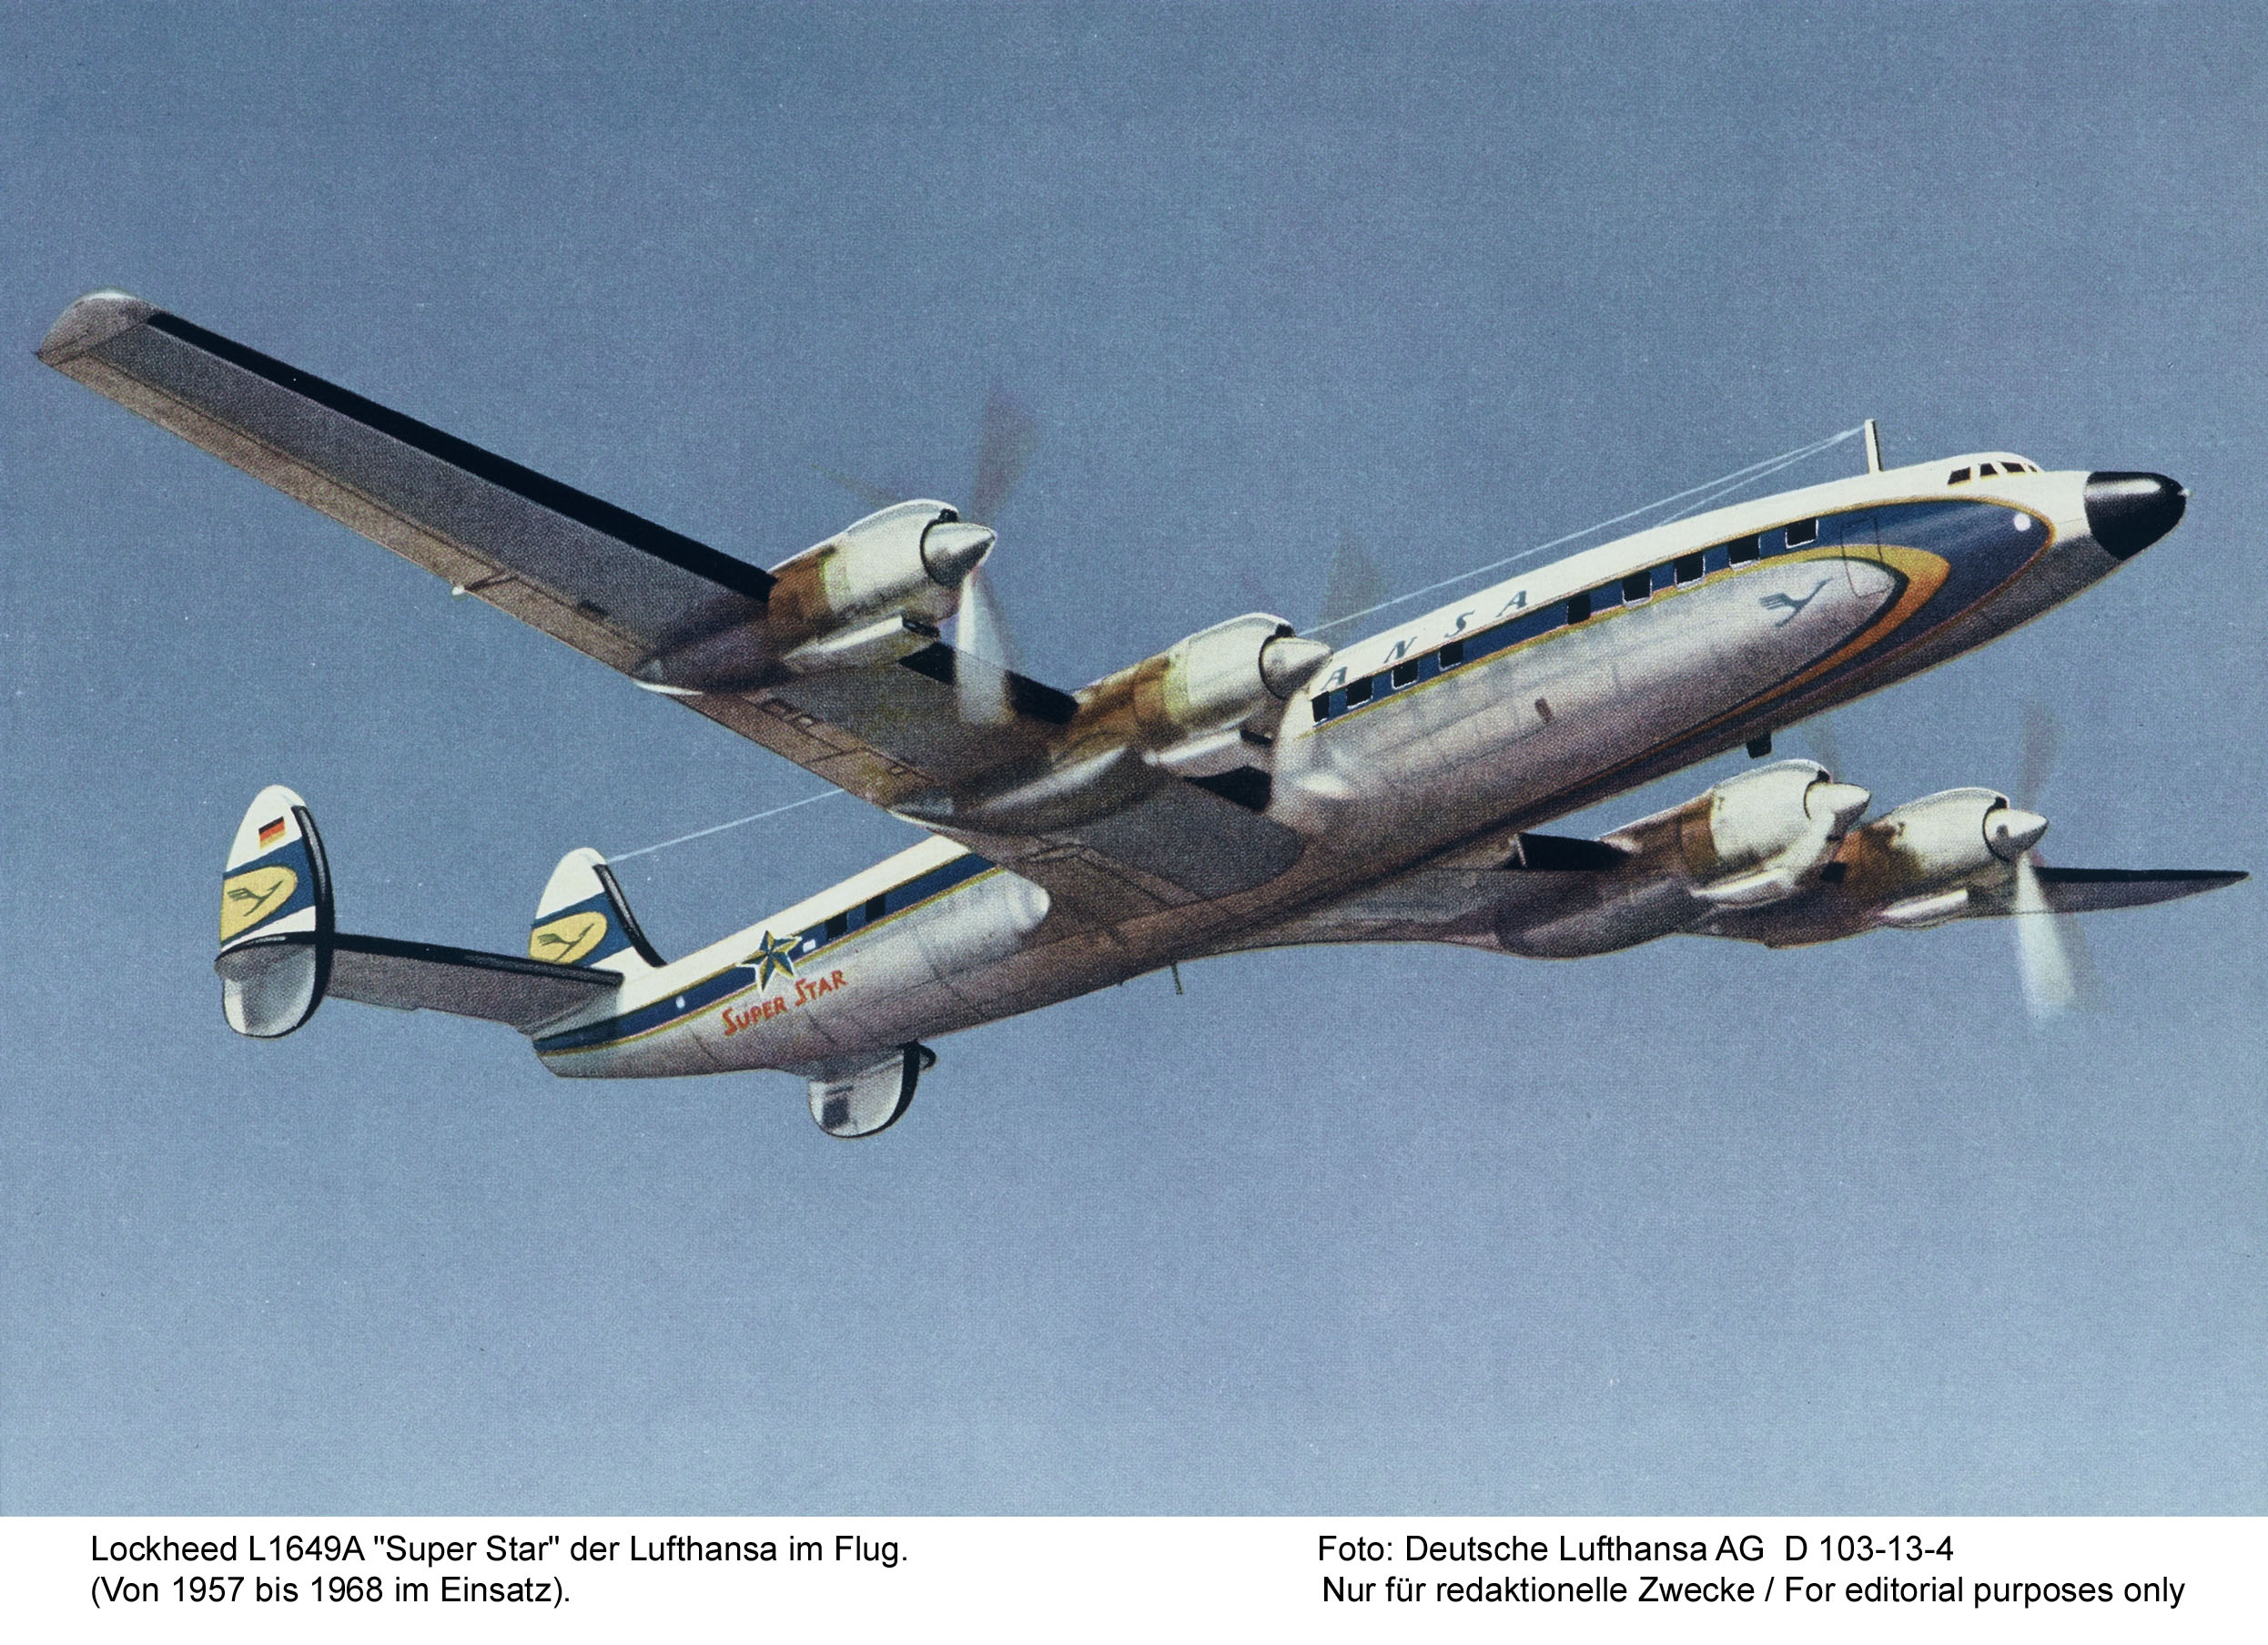 A vintage shot of a Lufthansa L-1649A Super Star in flight. (photo